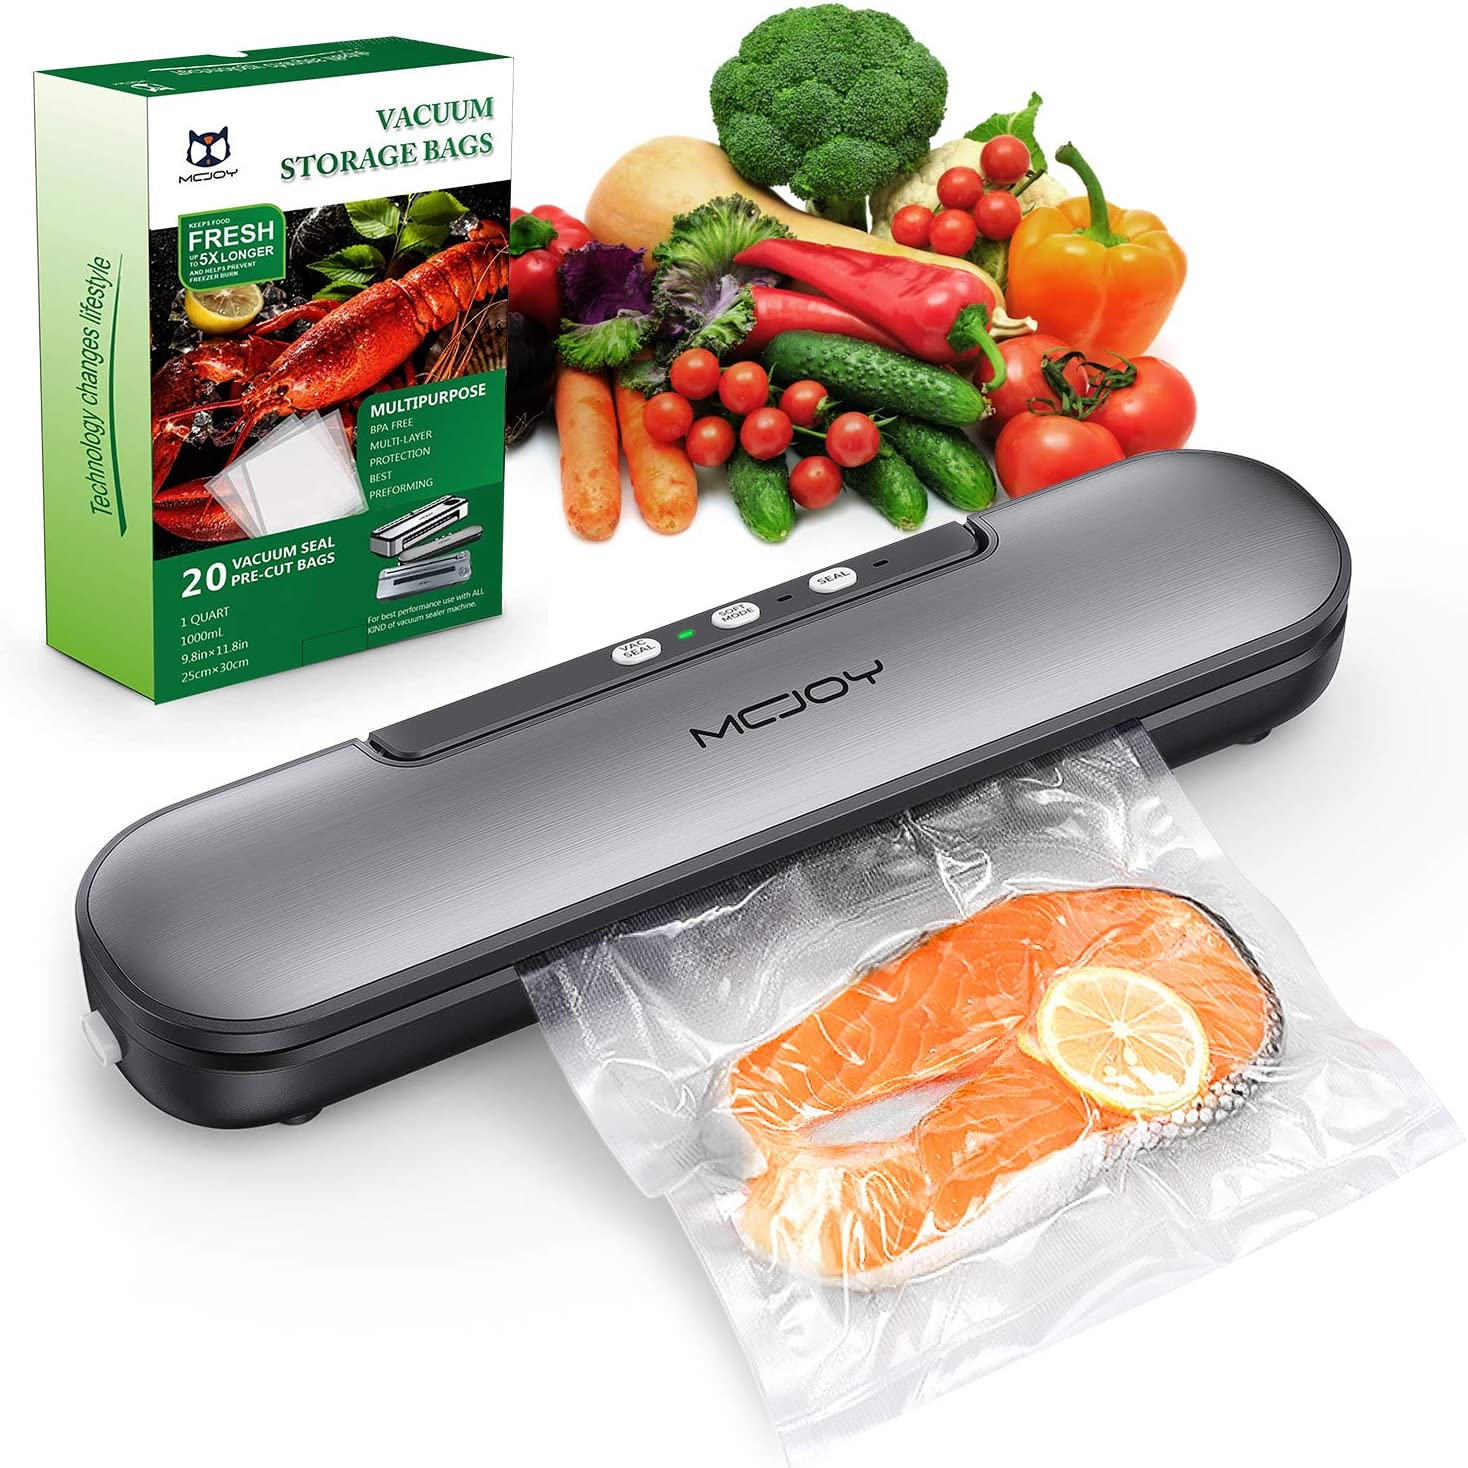 MCJOY Bundled Product of V69 Vacuum Sealer Machine and Vacuum Bag, Automatic Operation Vacuum Air Sealing For Food Preservation System, Led Indicator Lights, Compact Design And Easy Clean